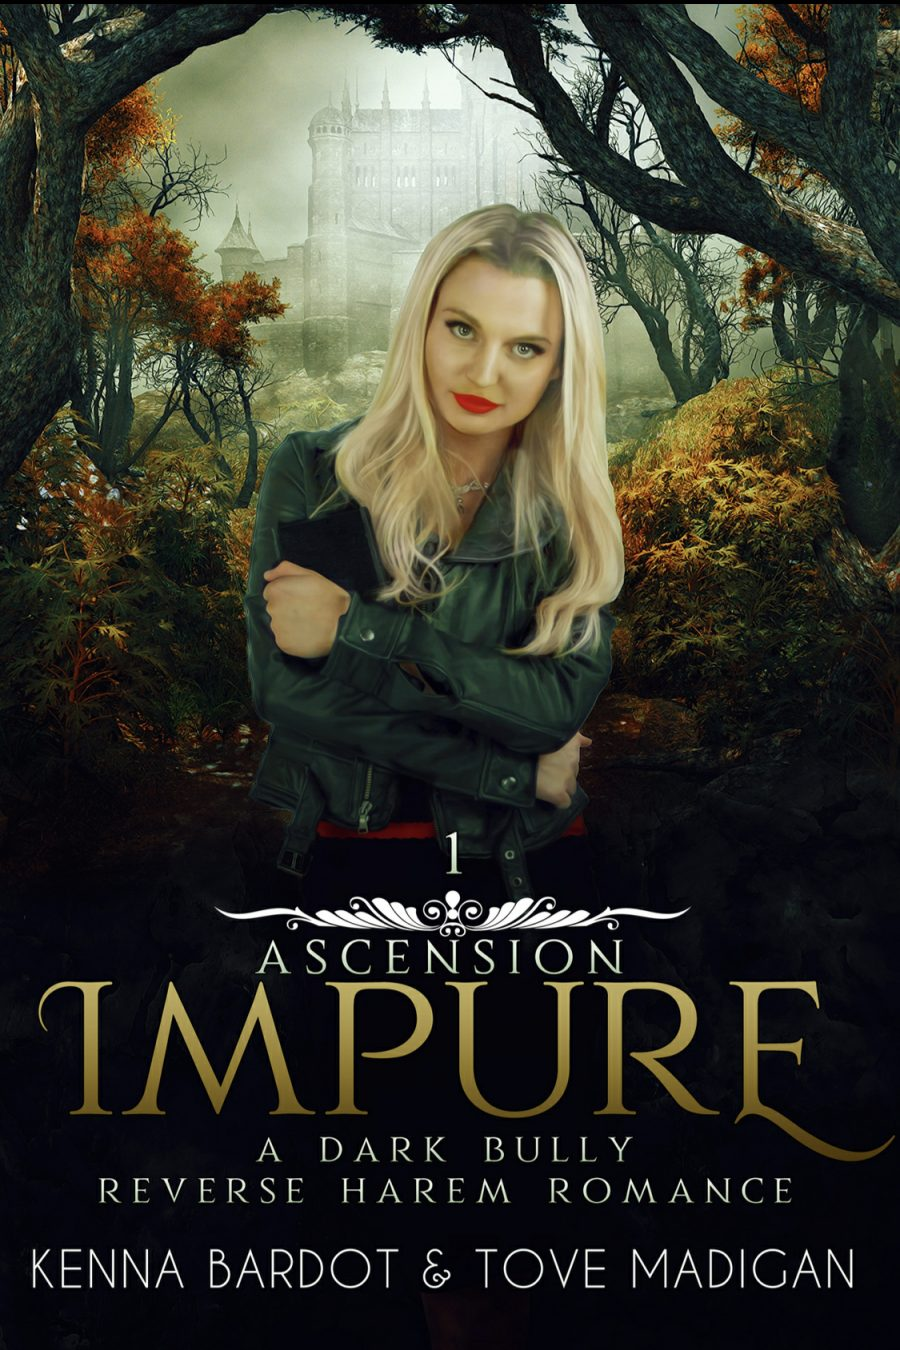 Impure (Ascension - Book 1) by Kenna Bardot & Tove Madigan - A Book Review #Dark #ReverseHarem #Fantasy #Bully #DNF #KindleUnlimited #KU